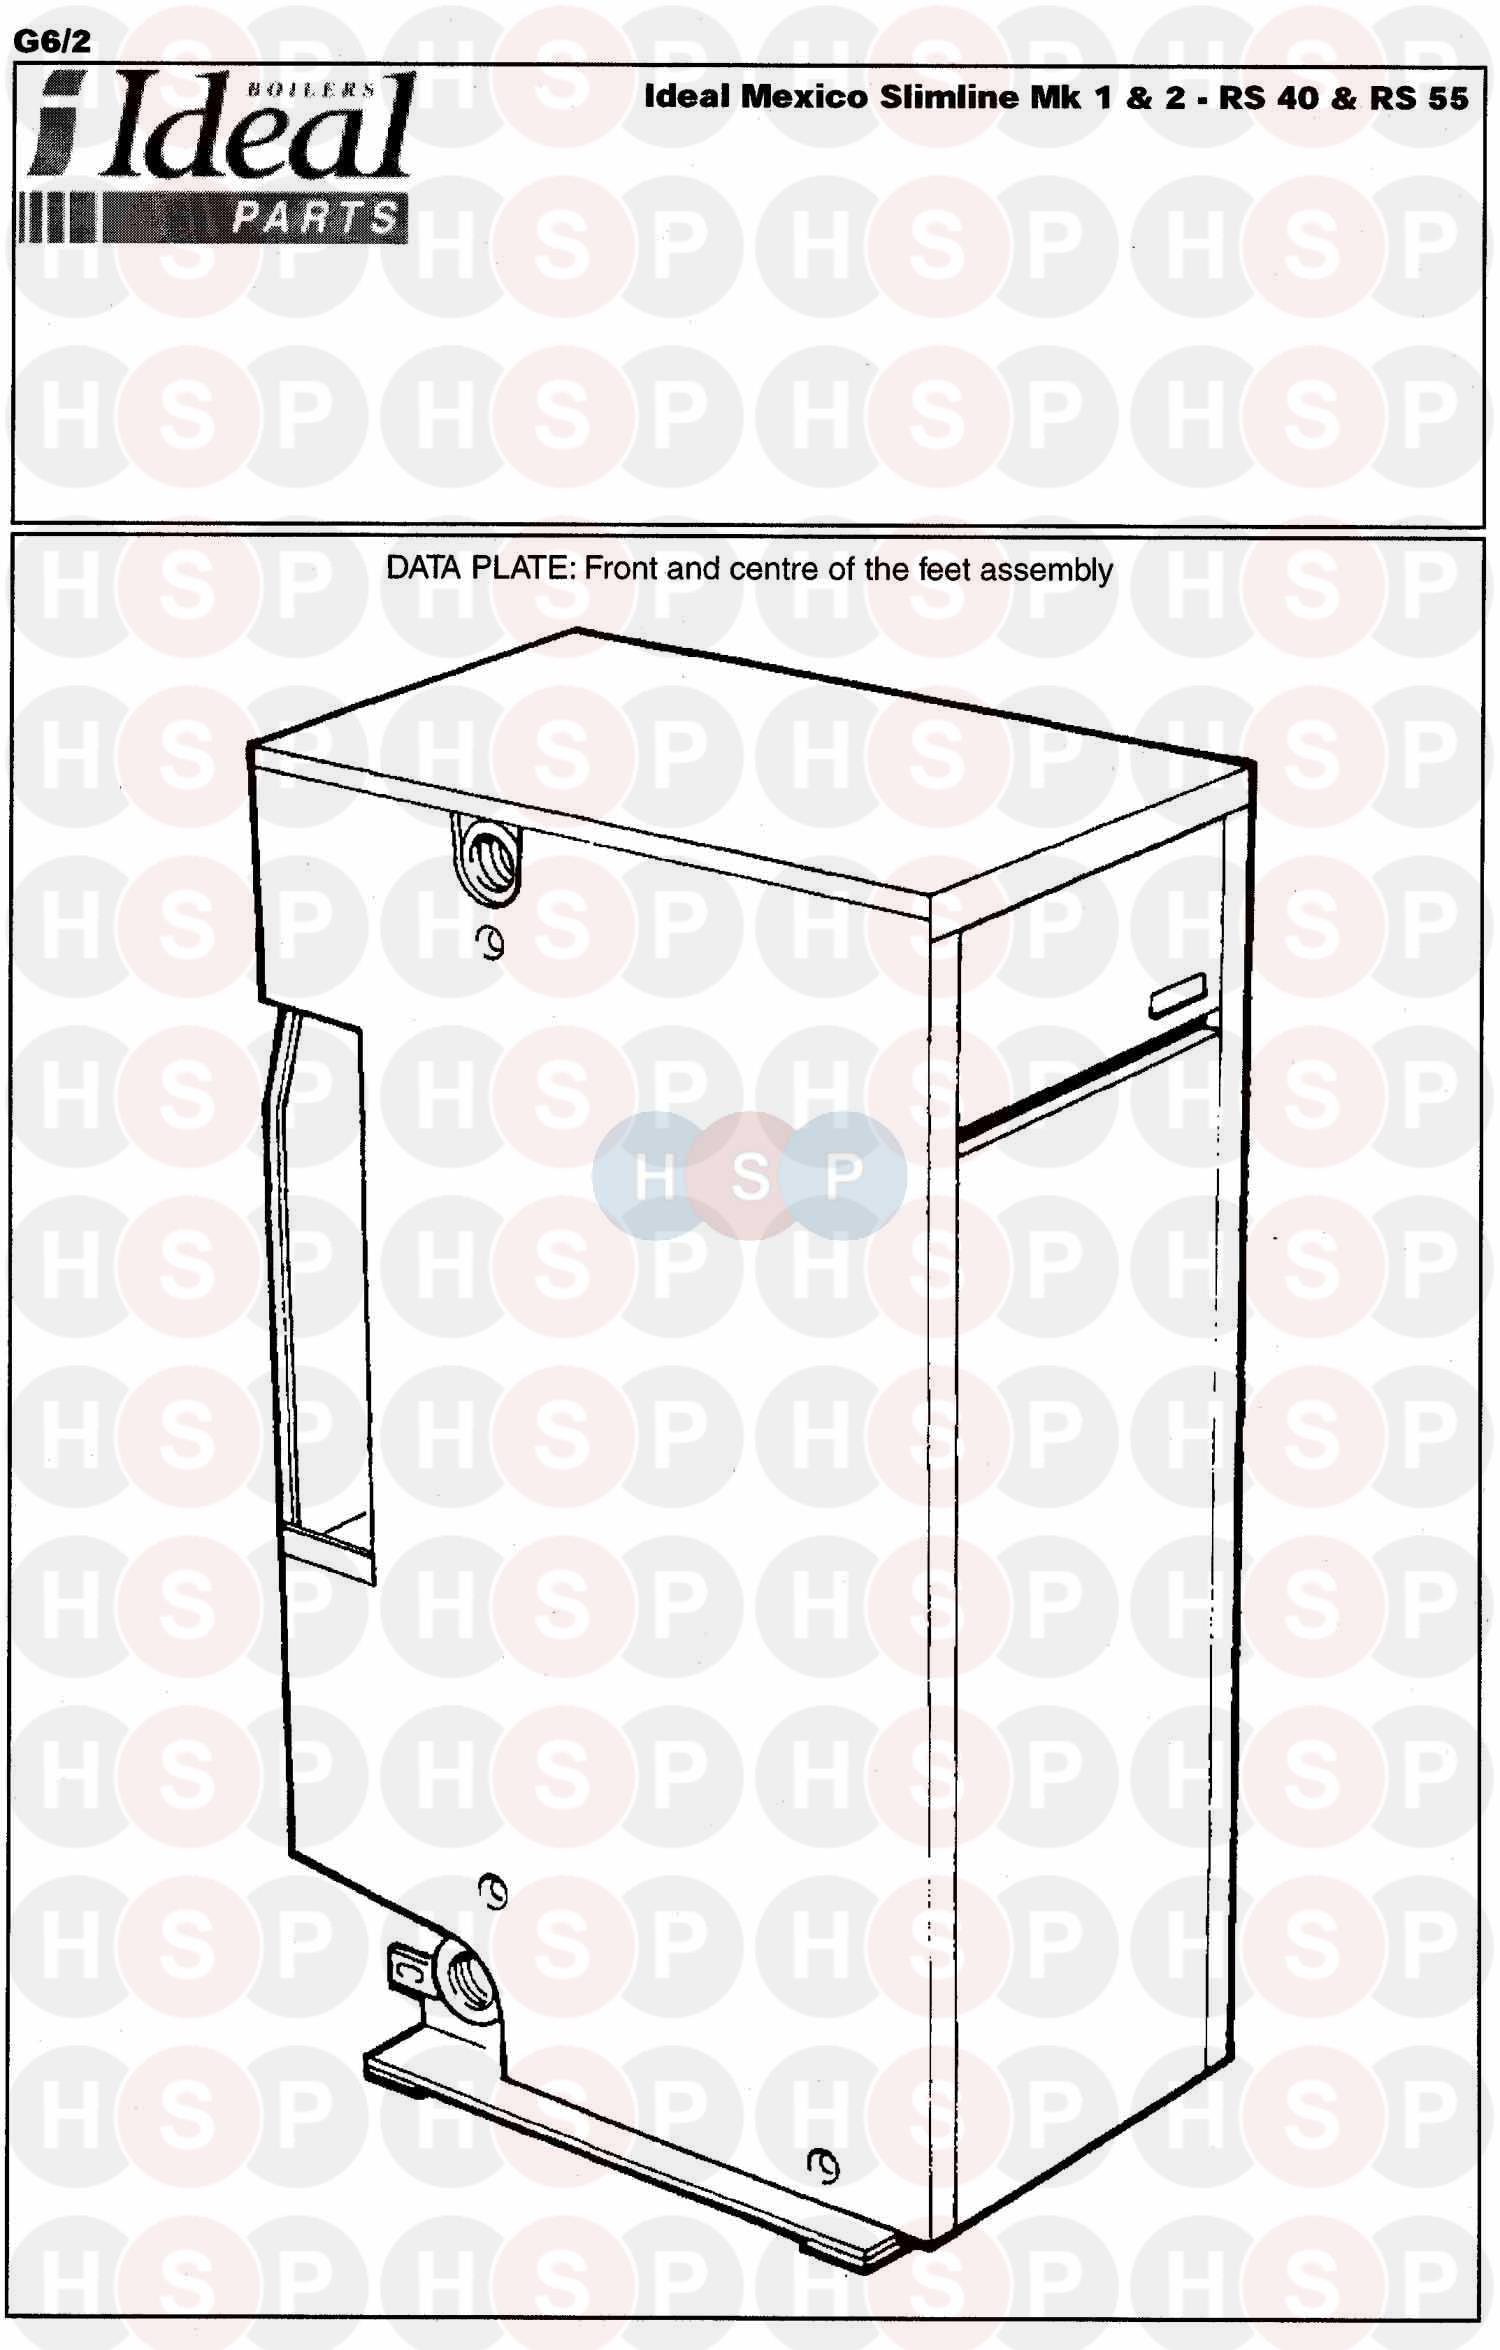 ideal mexico slimline rs 55 appliance diagram  appliance